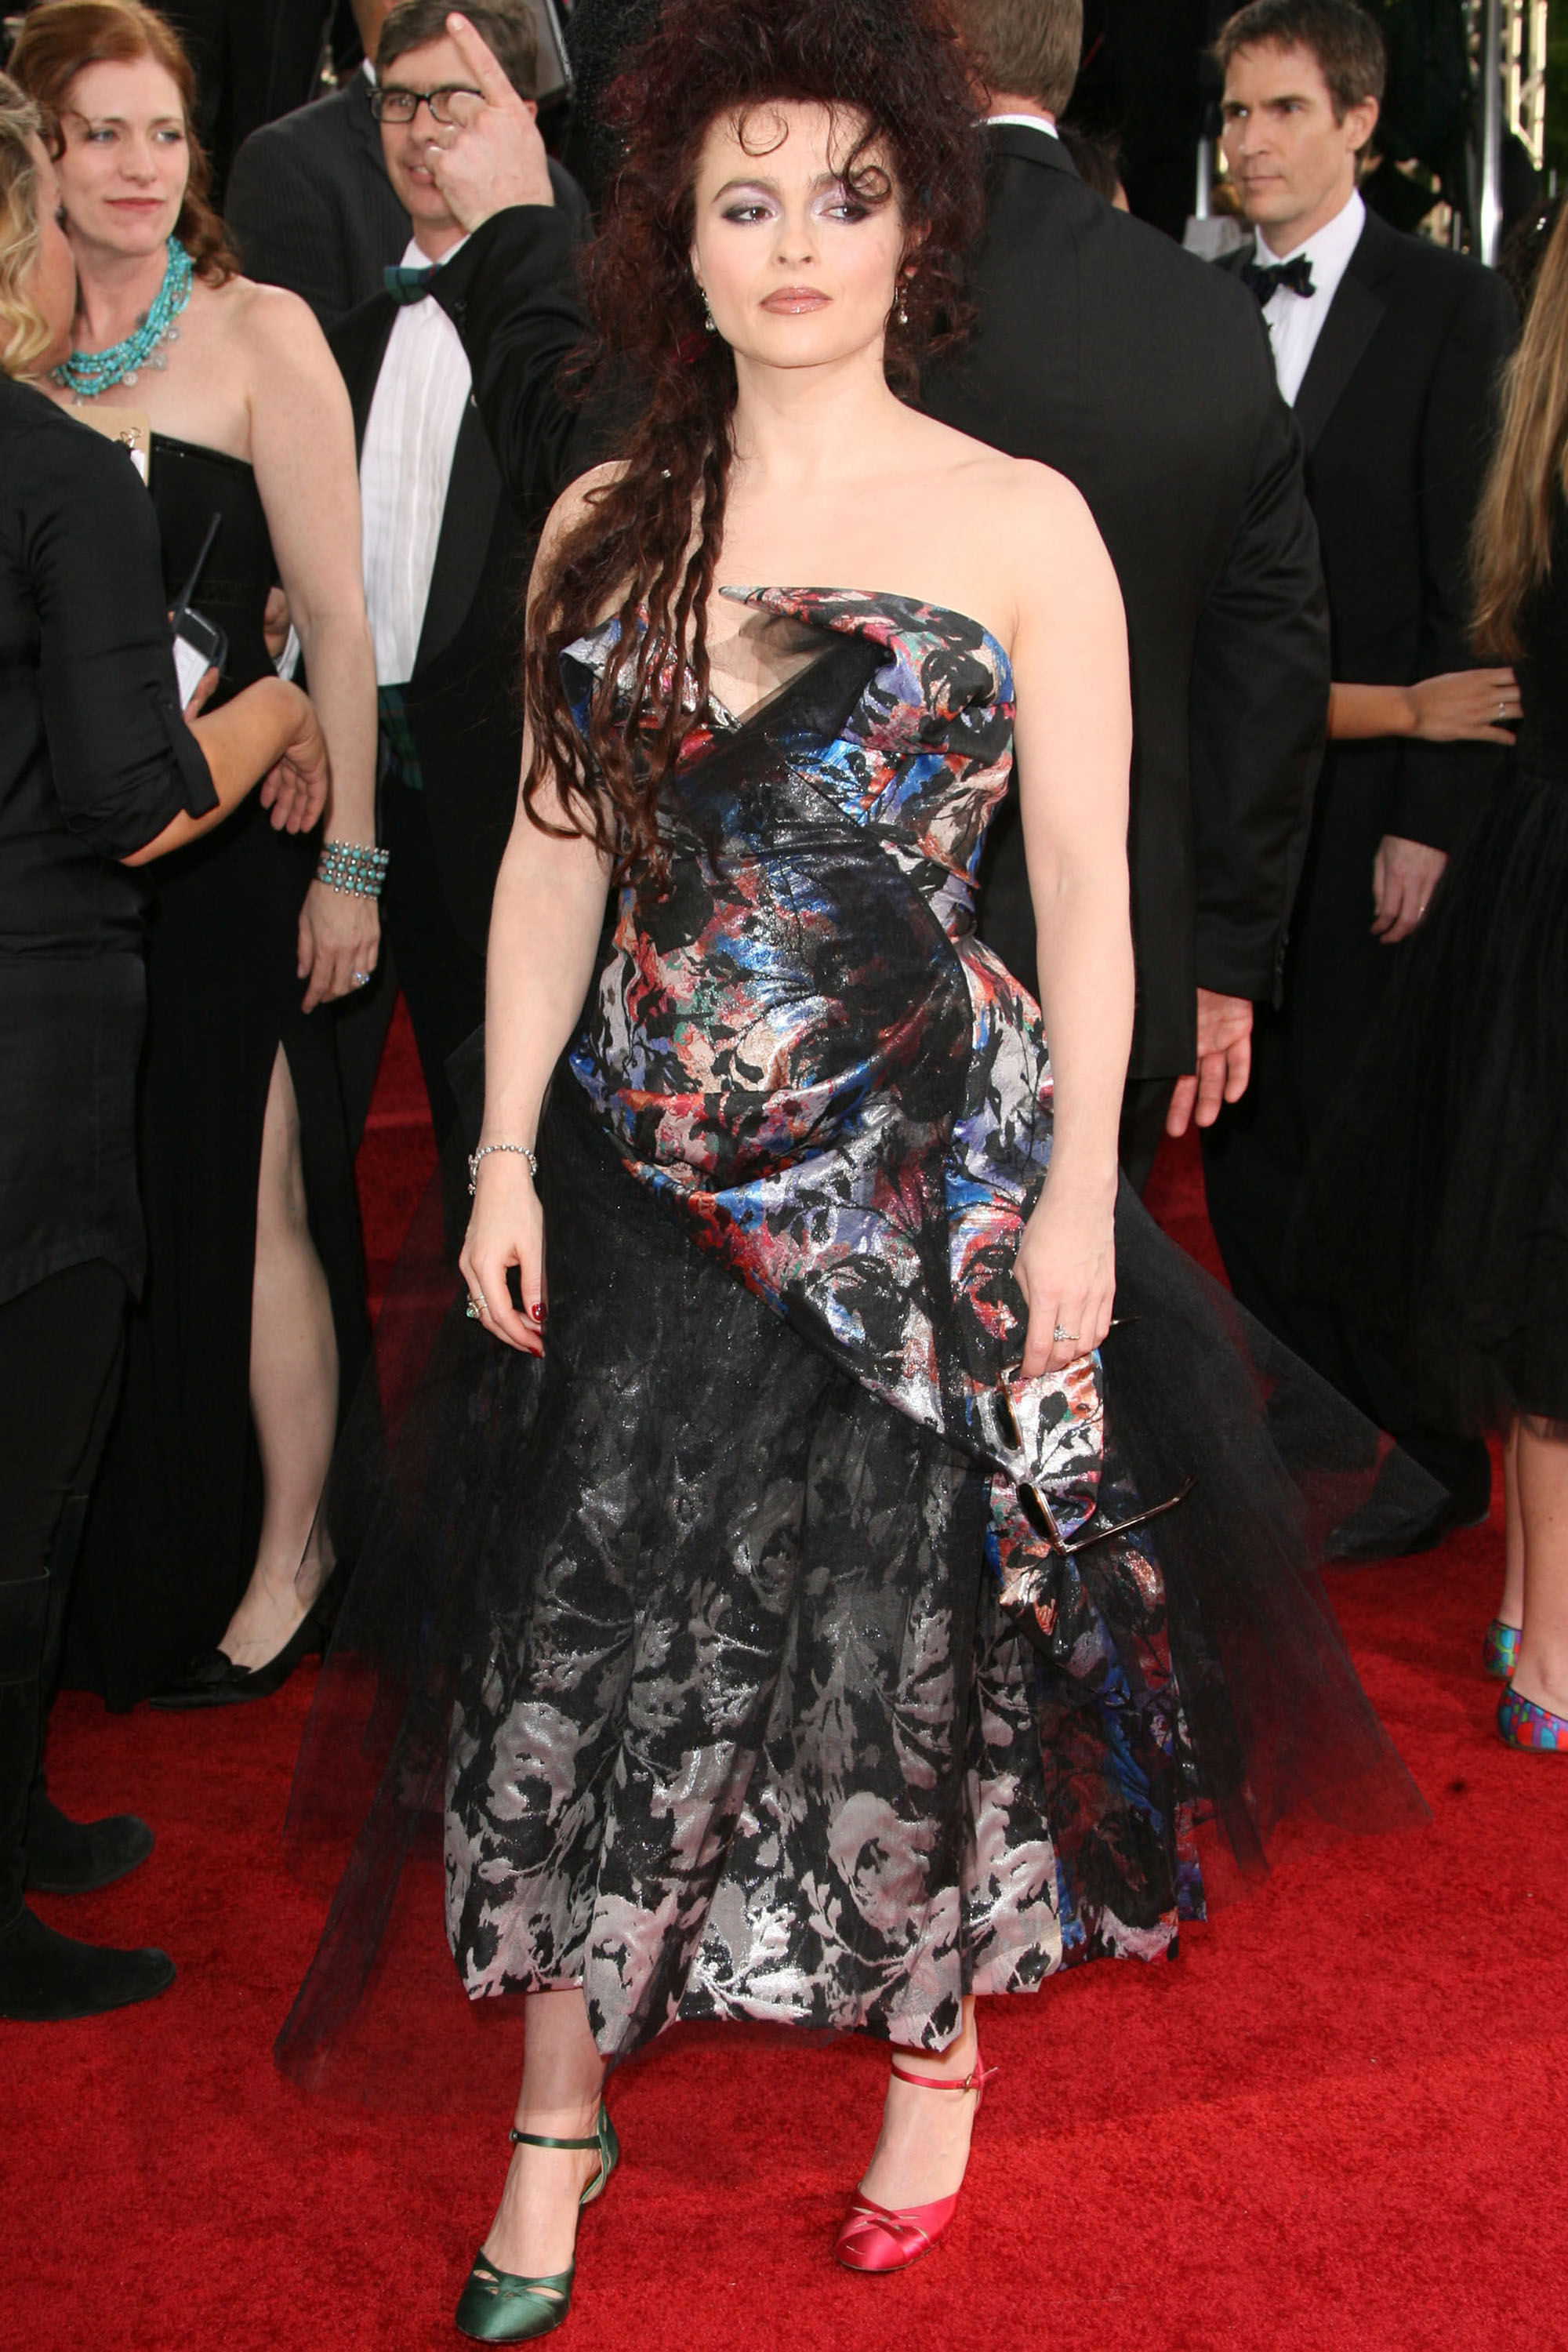 Helena Bonham Carter at the 2011 Golden Globes